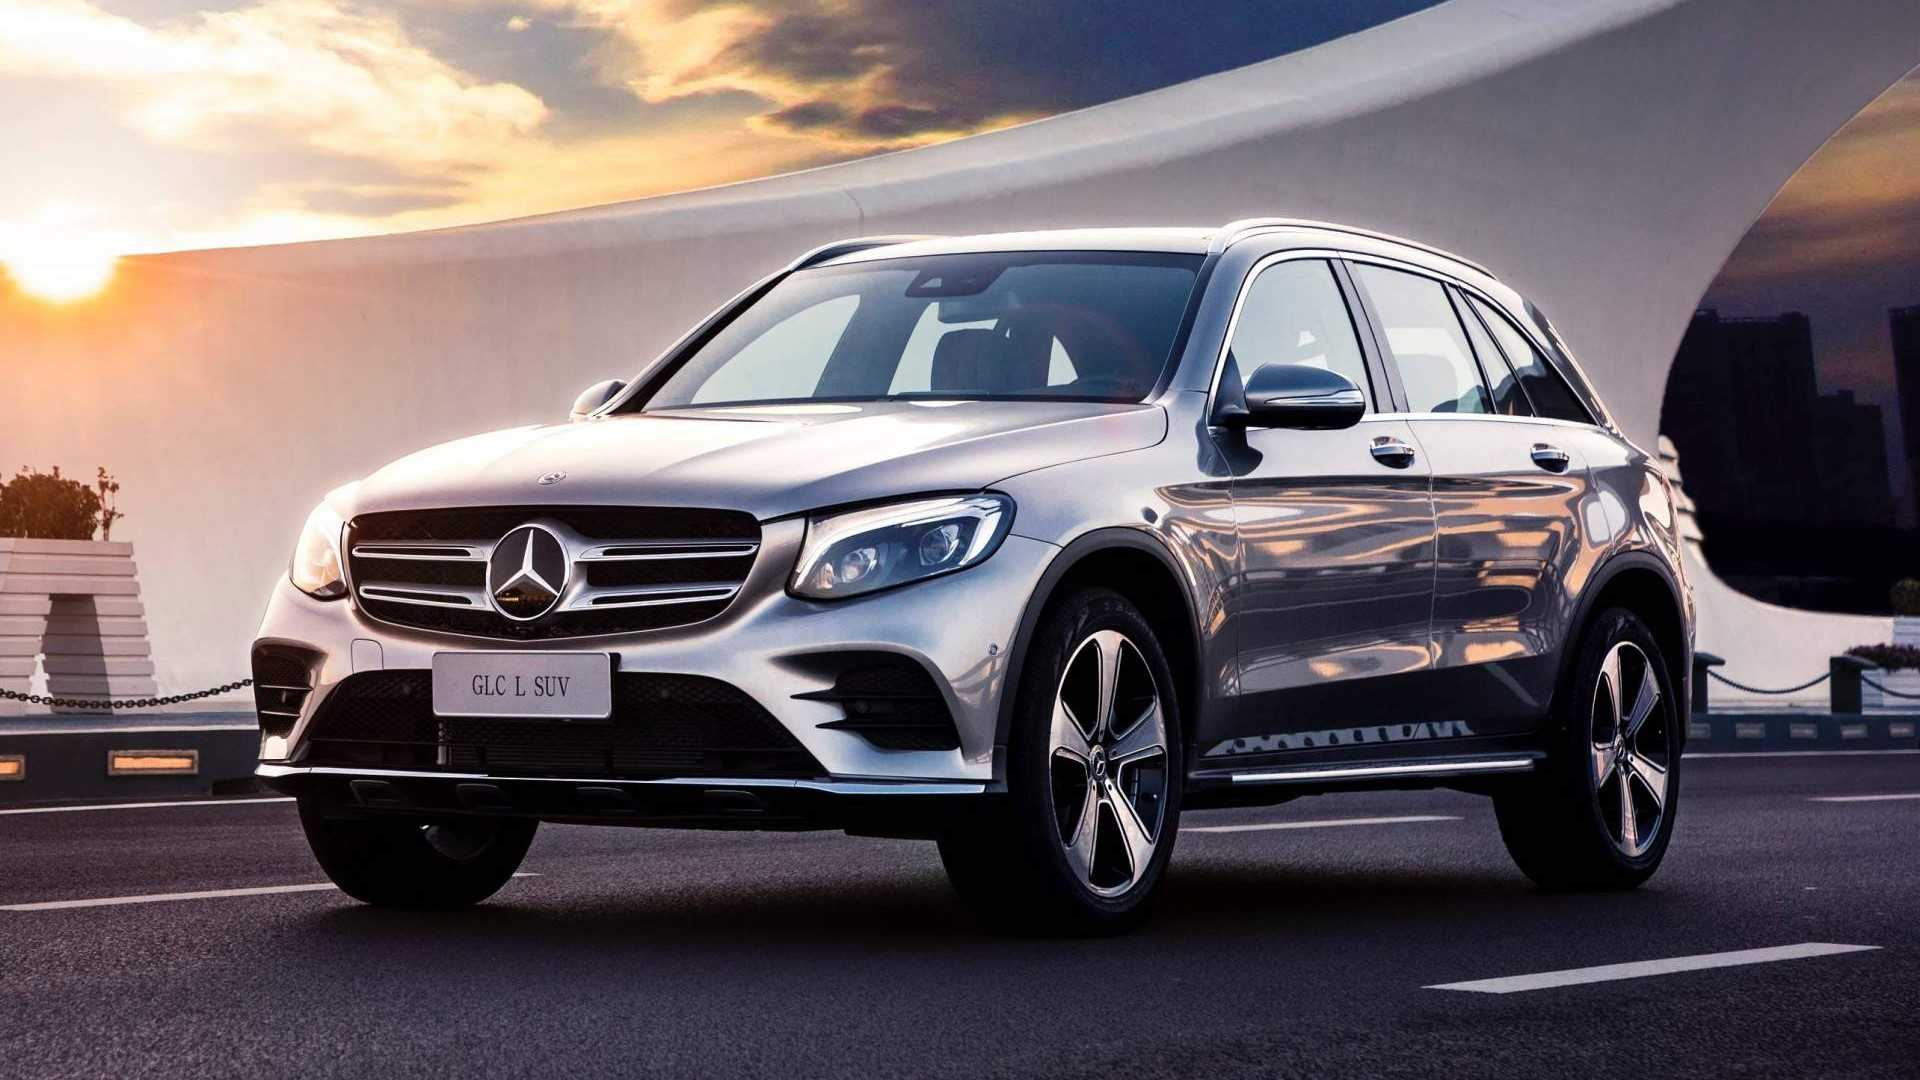 2018-mercedes-benz-glc-l (1)